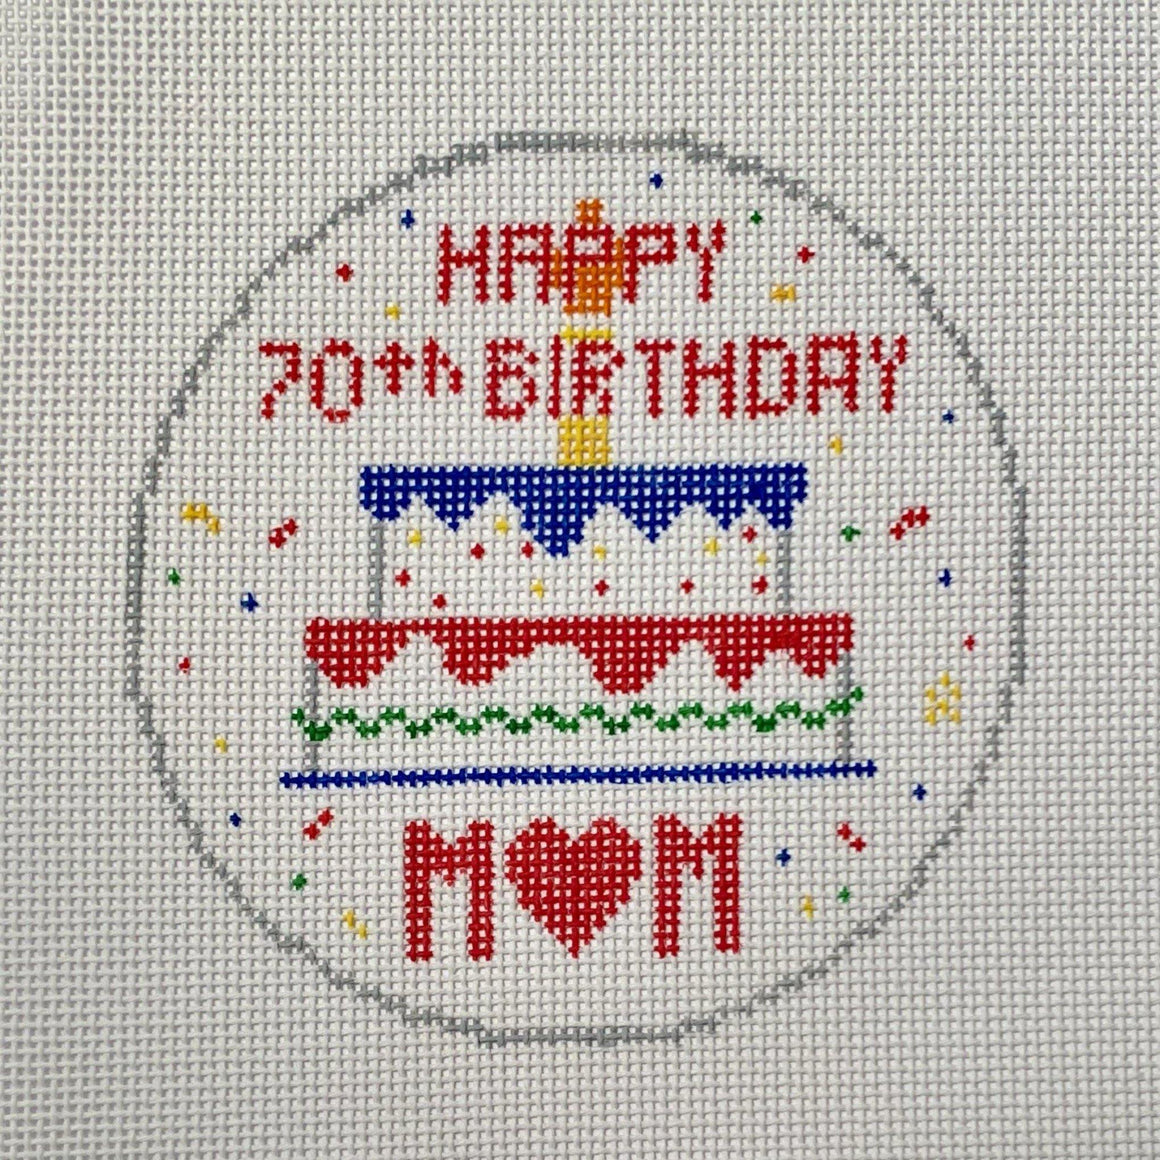 Birthday Cake Canvas - Needlepoint by Laura, LLC